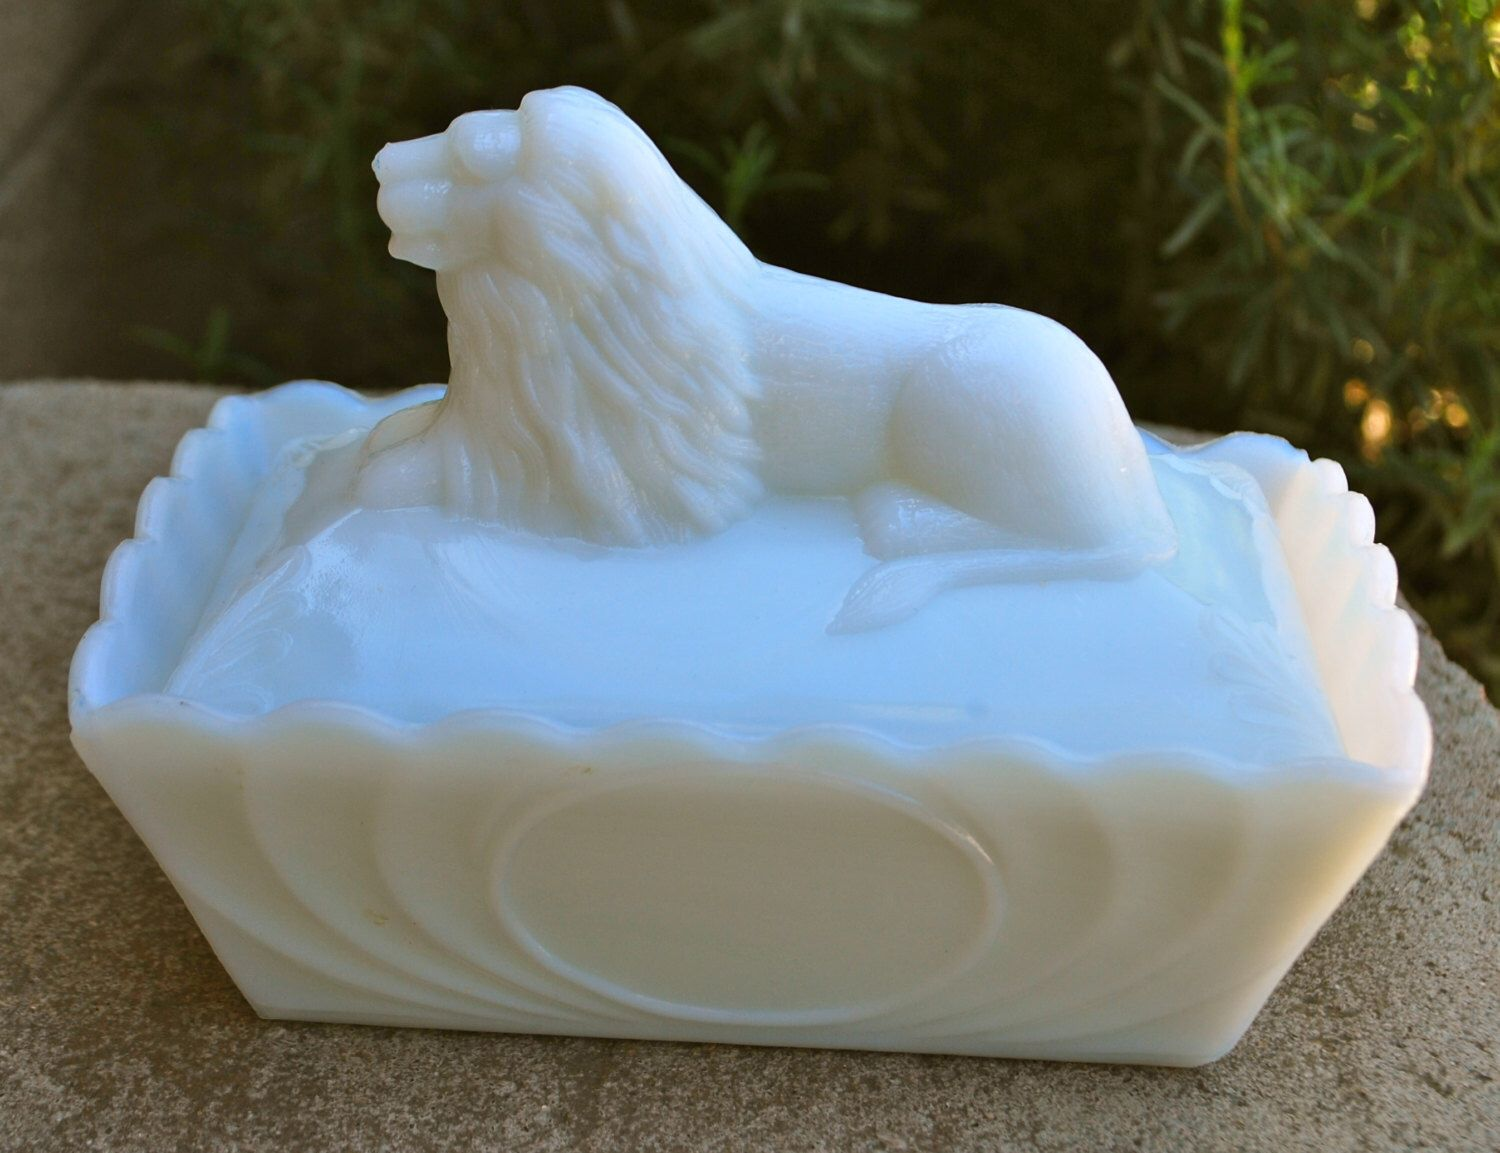 Eagle Glass Co. c.1895-1917 - Lion Milk Glass Covered Dish - Butter Dish - Trinket Box - Scalloped - Early American Pattern Glass (BV052) by BrillStreet on Etsy https://www.etsy.com/listing/233727649/eagle-glass-co-c1895-1917-lion-milk